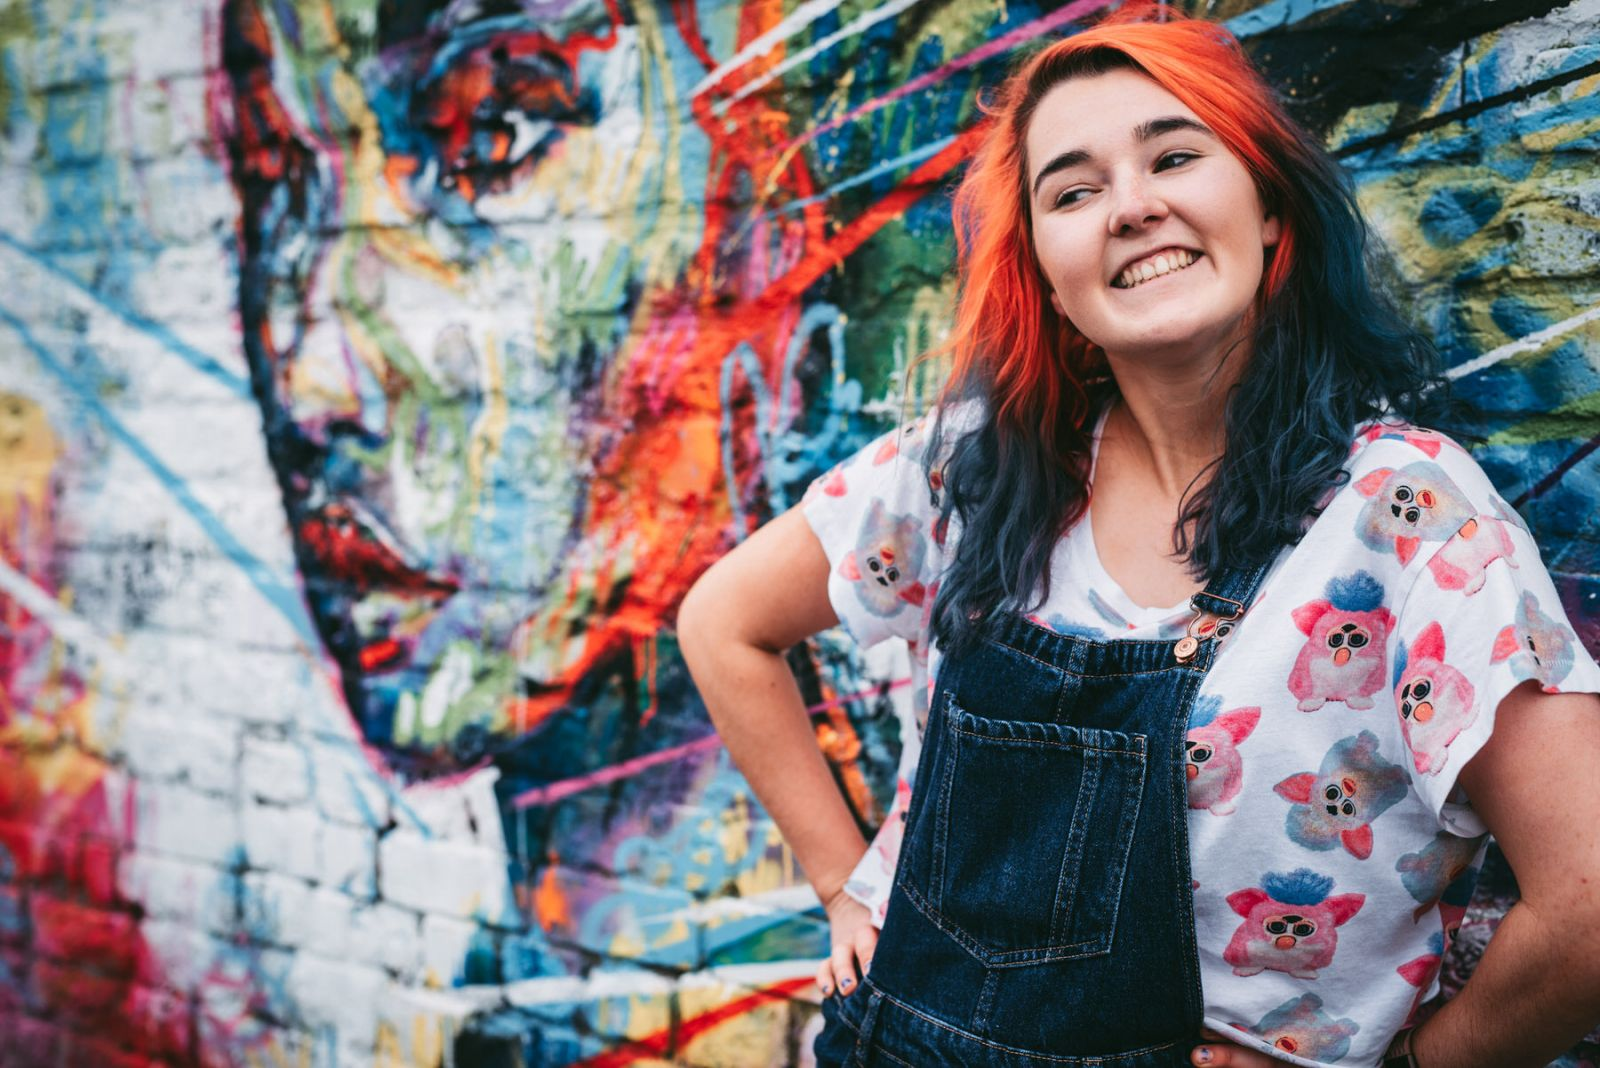 liverpool wedding photographer with red and blue hair smiling for a photo in the baltic triangle area